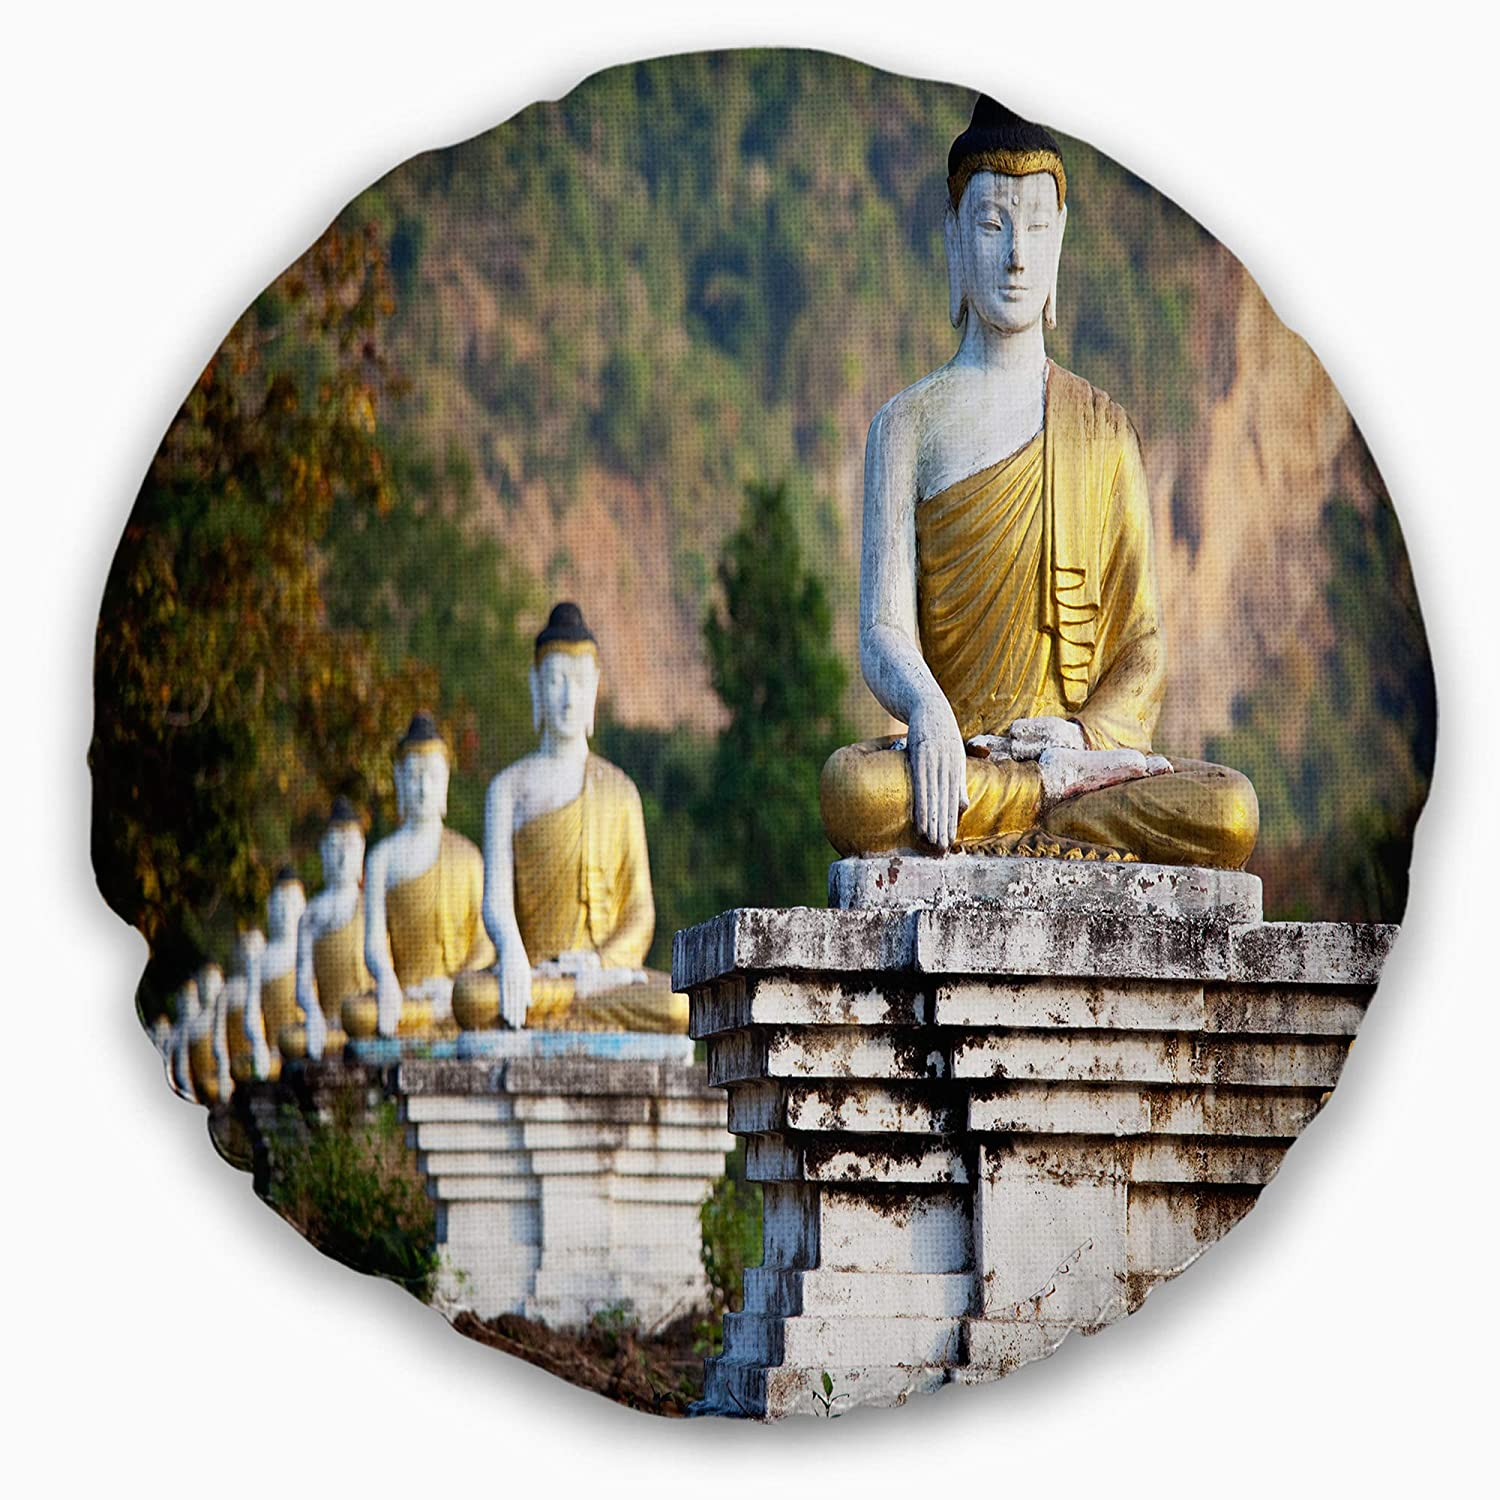 Designart CU12269-20-20-C Beautiful Row of Buddha Statues Landscape Printed Round Cushion Cover for Living Room Sofa Throw Pillow 20 Insert Side